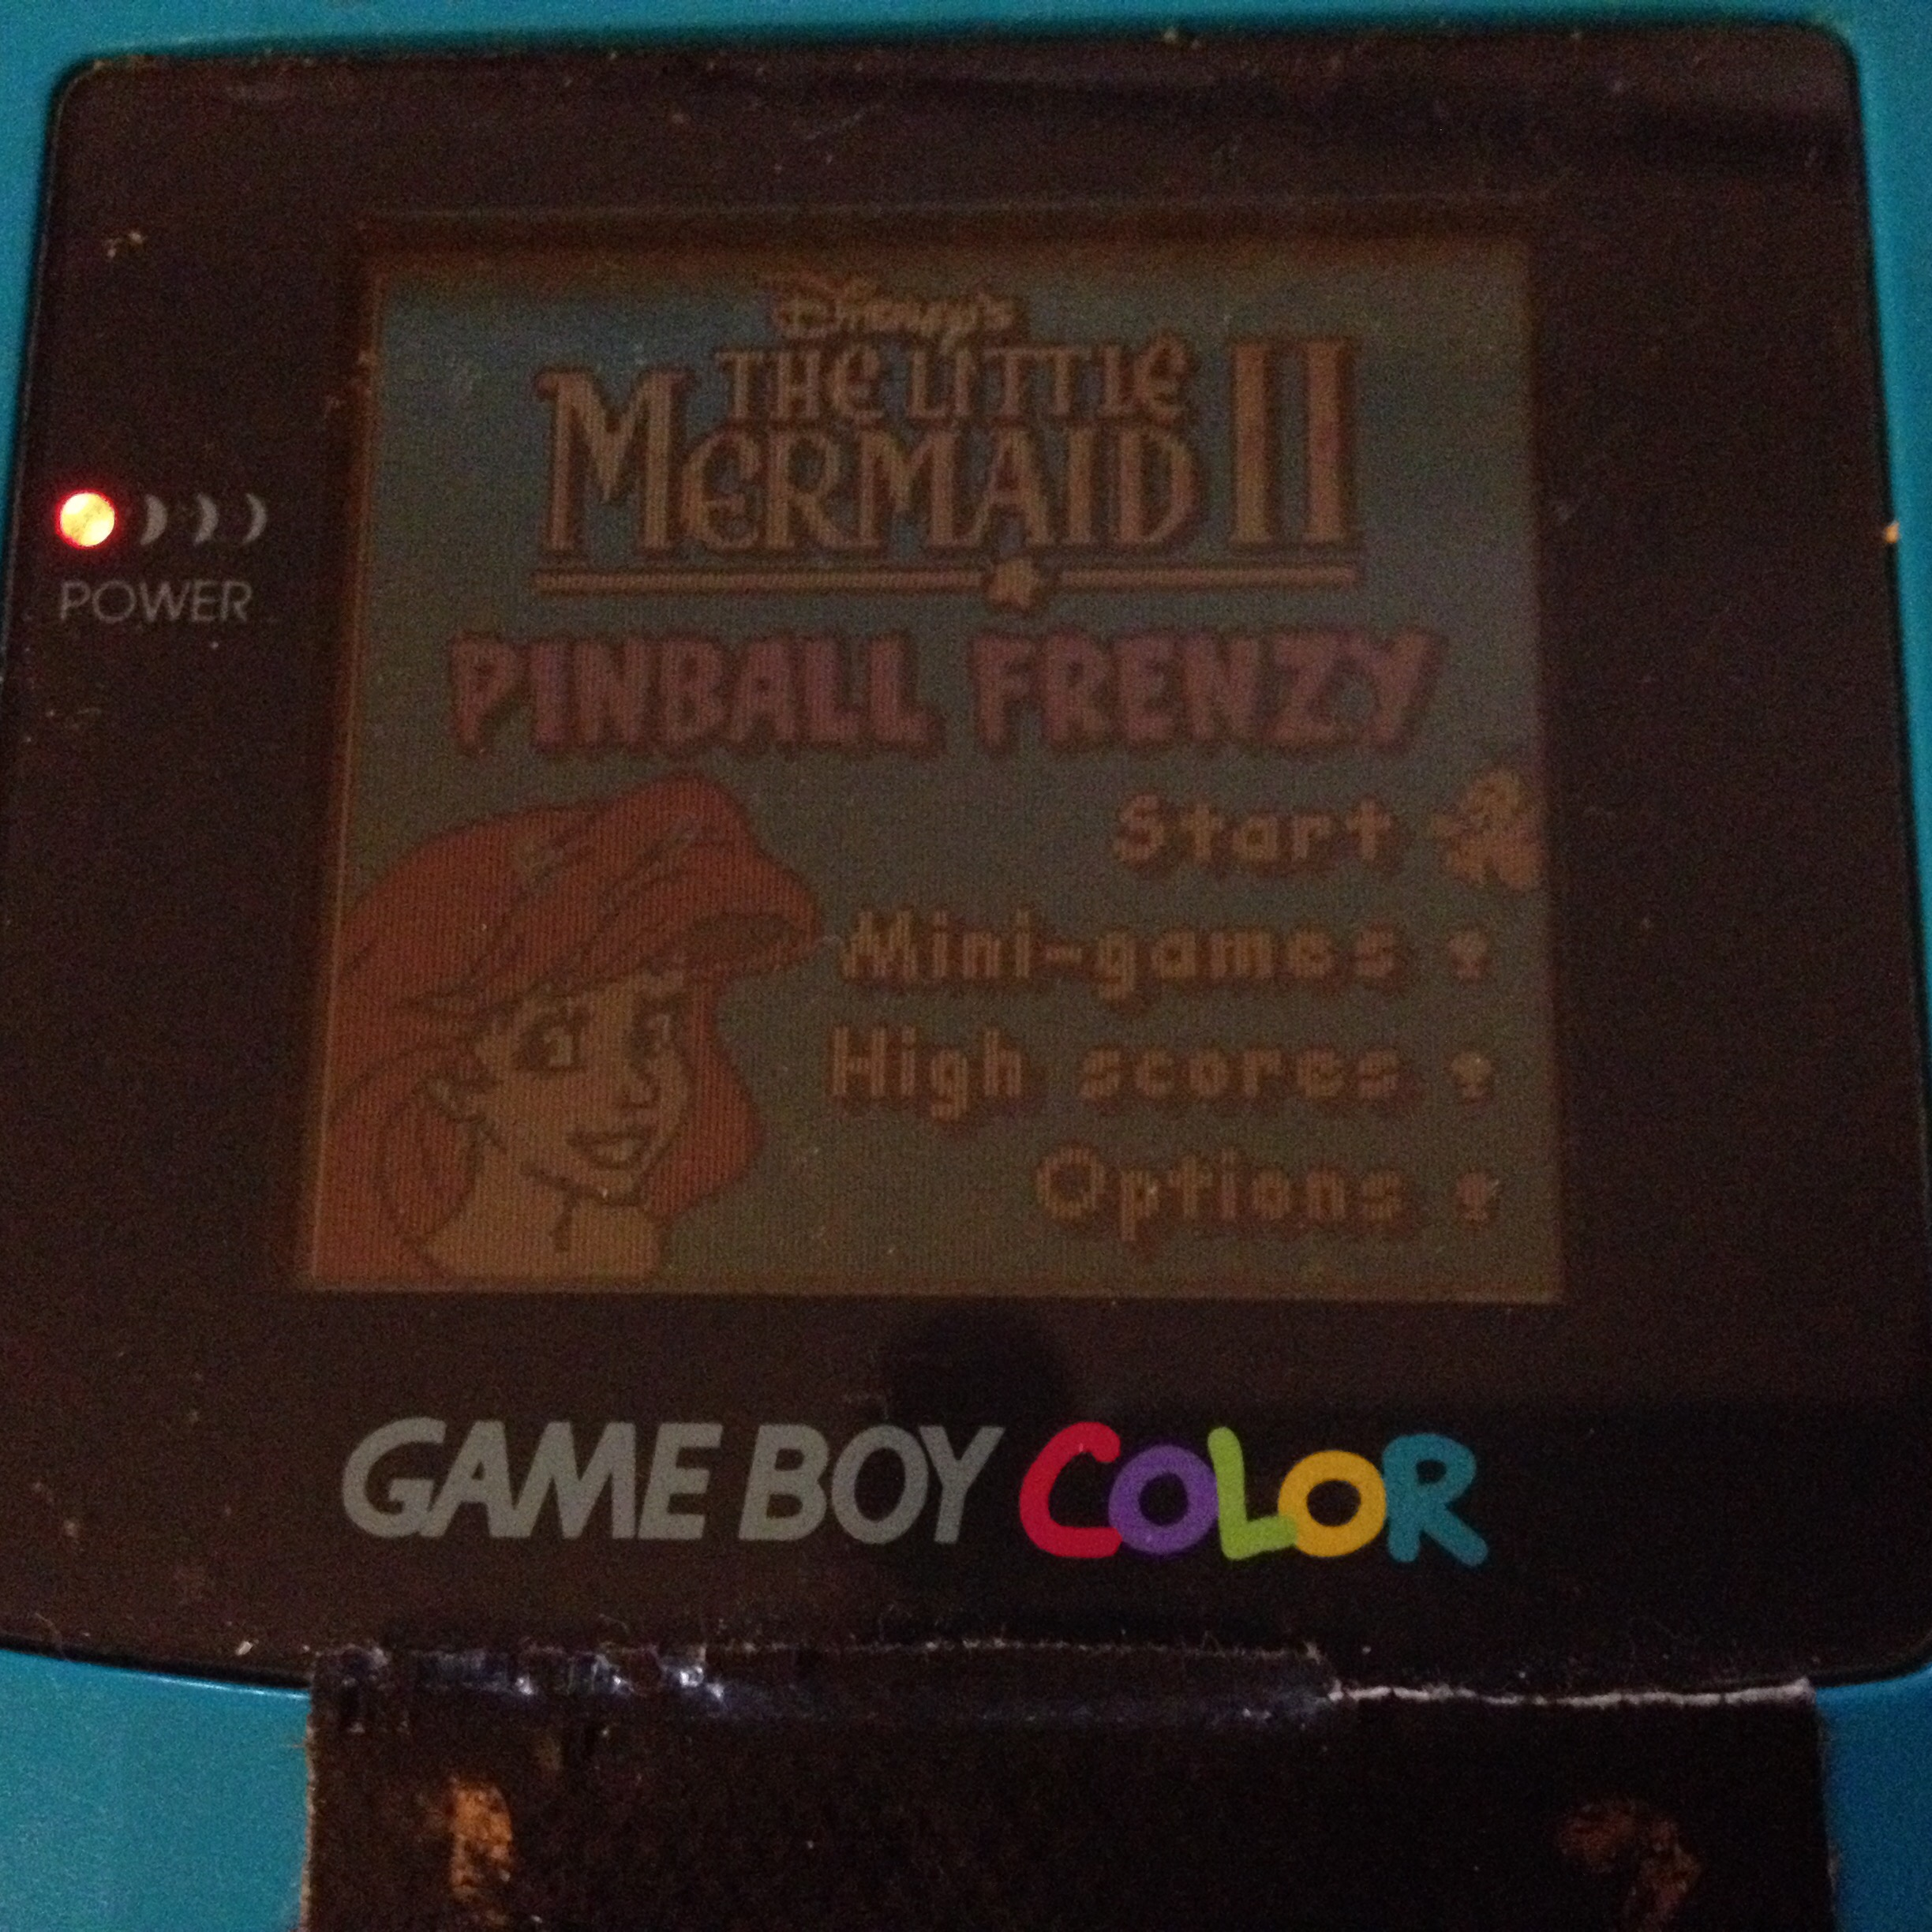 The Little Mermaid II: Pinball Frenzy 2,203,369,879 points